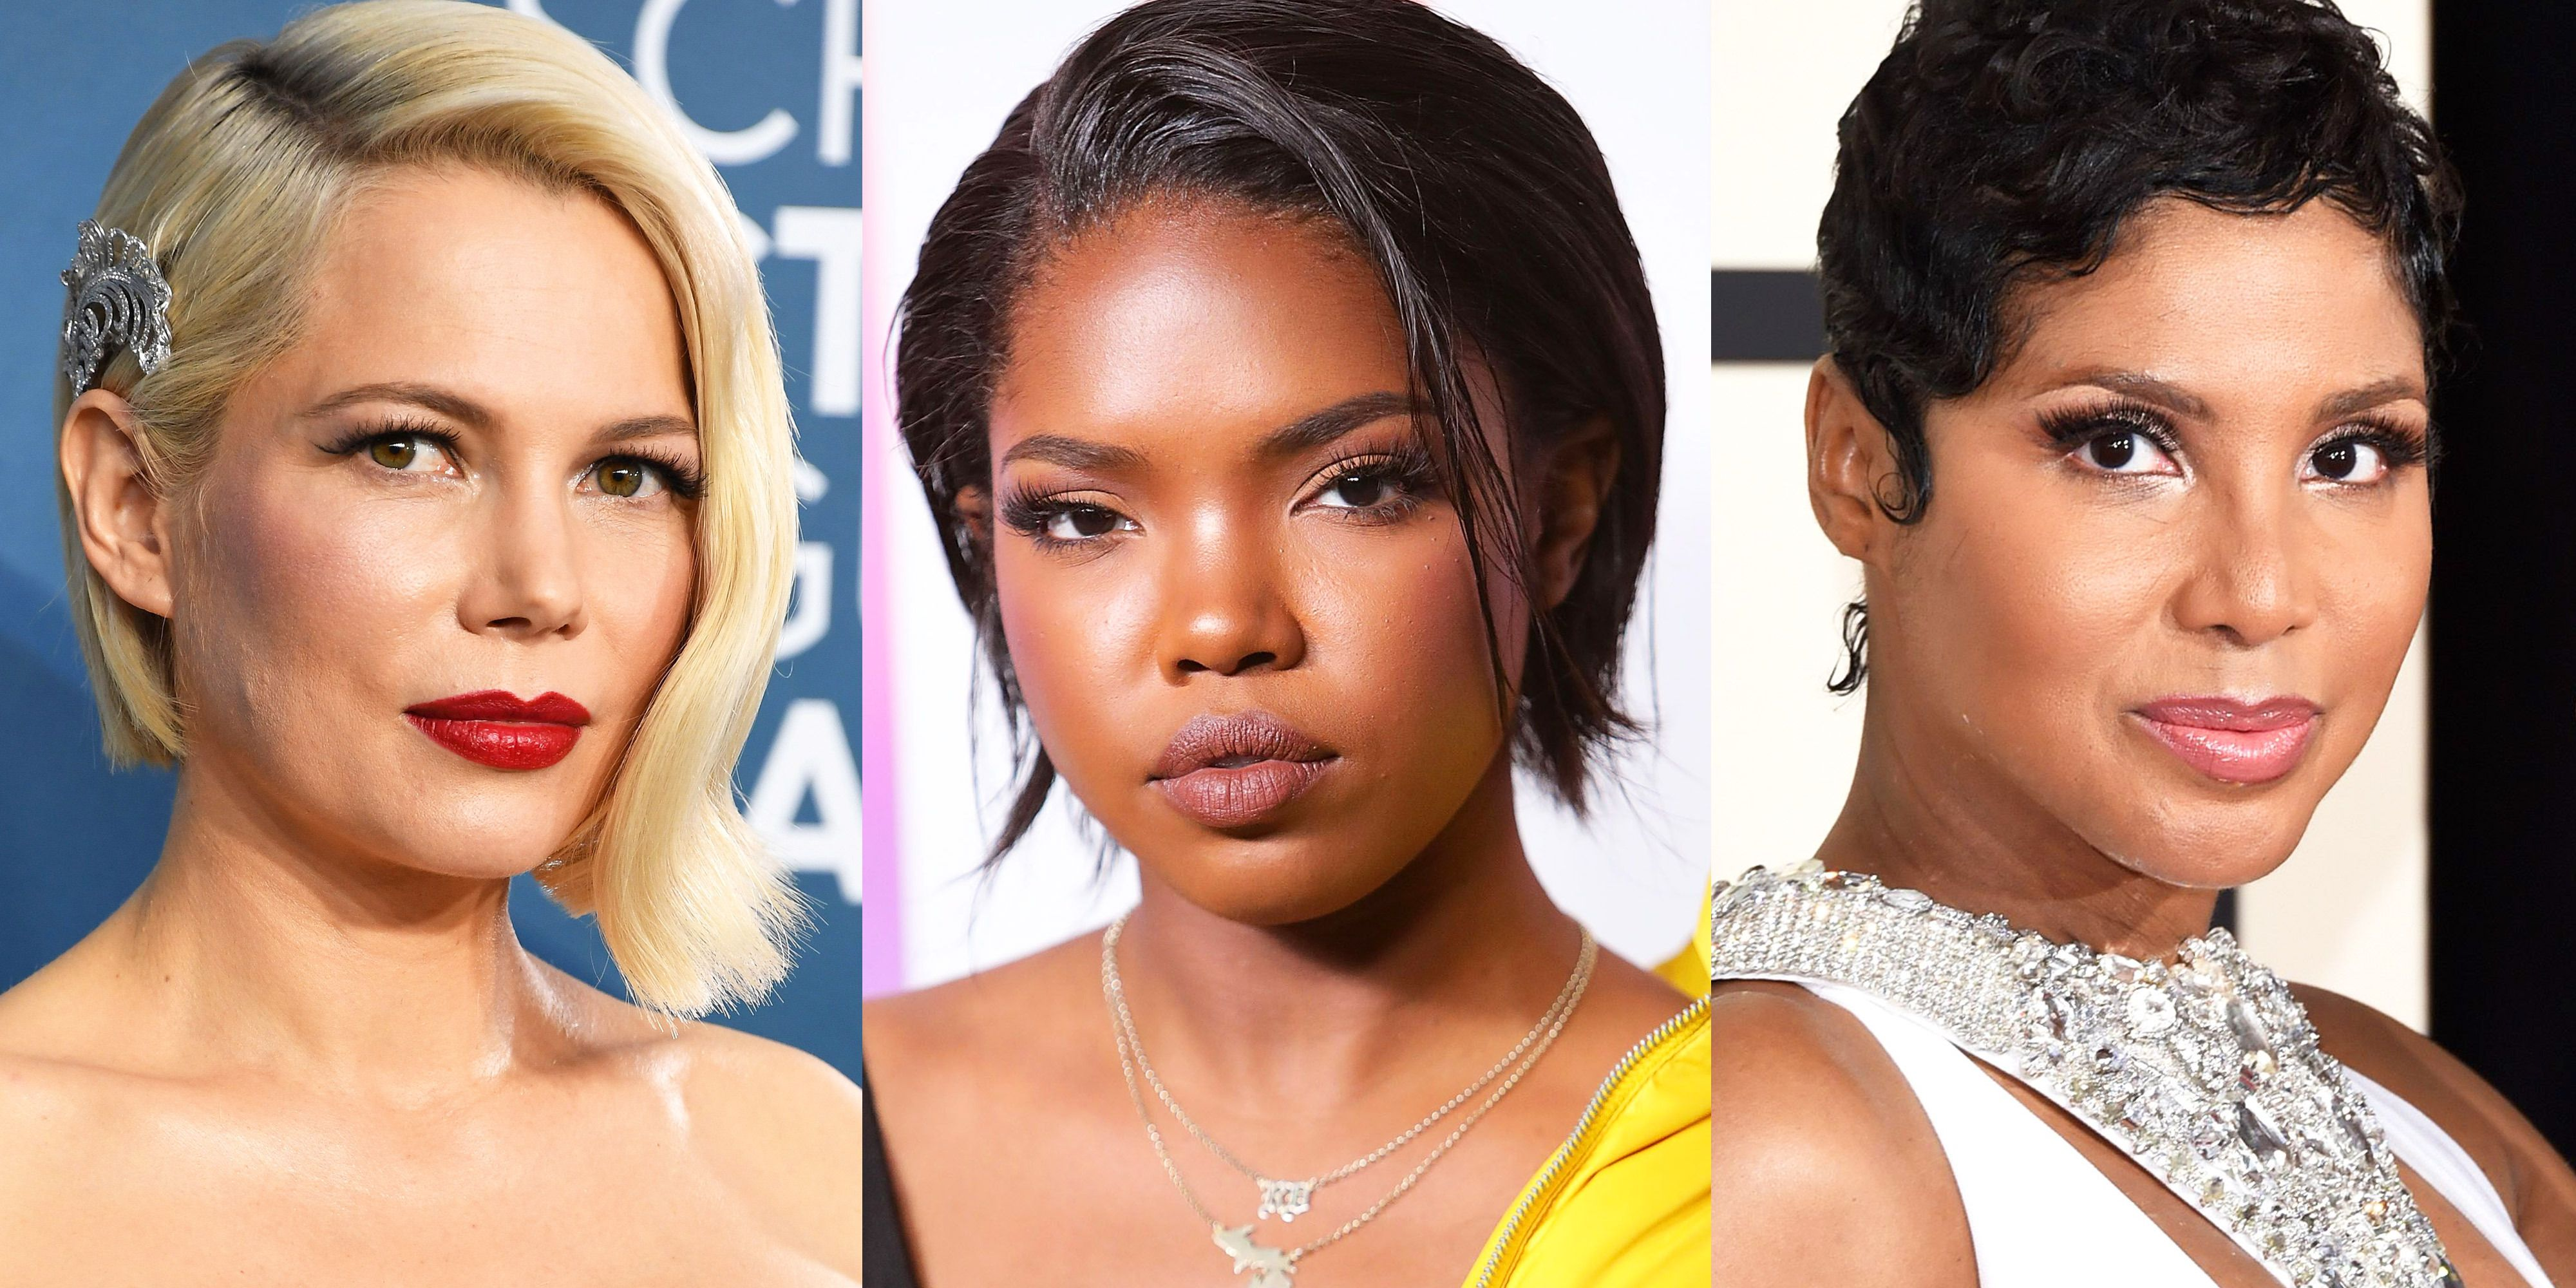 10 Short Hairstyles for Round Faces That Are Actually Gorgeous